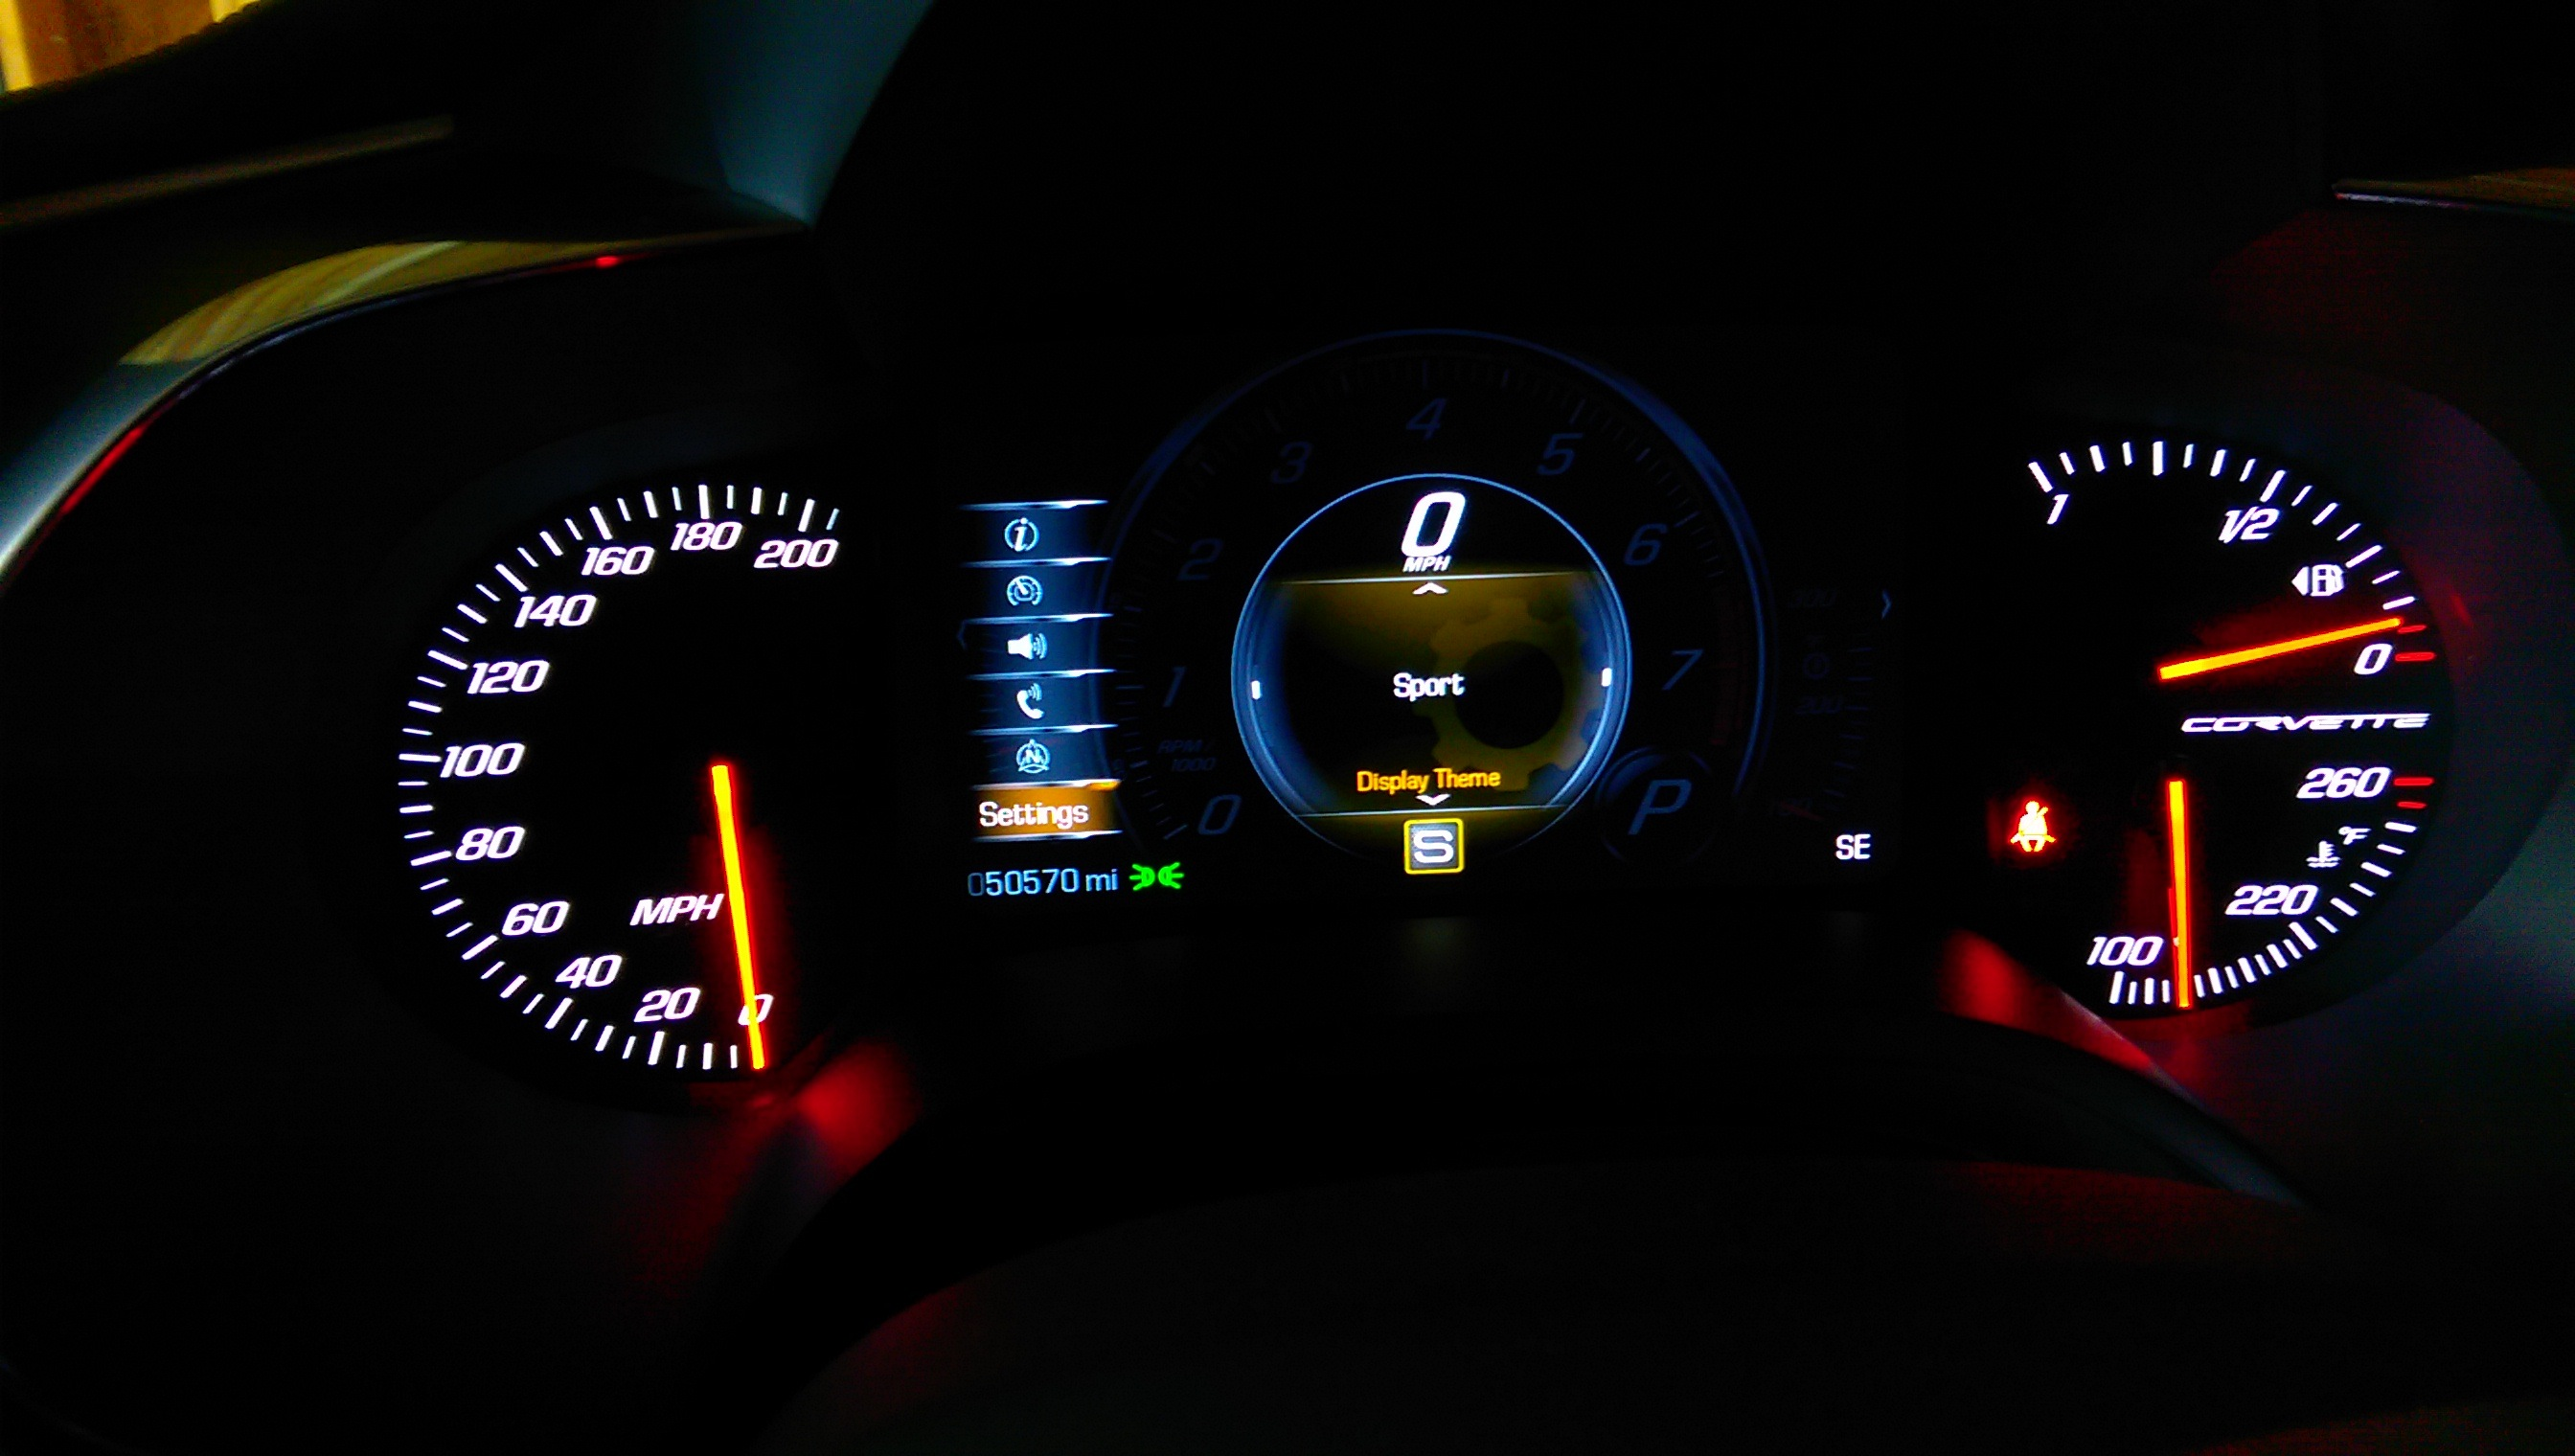 Dash speedometer display won't leave track mode